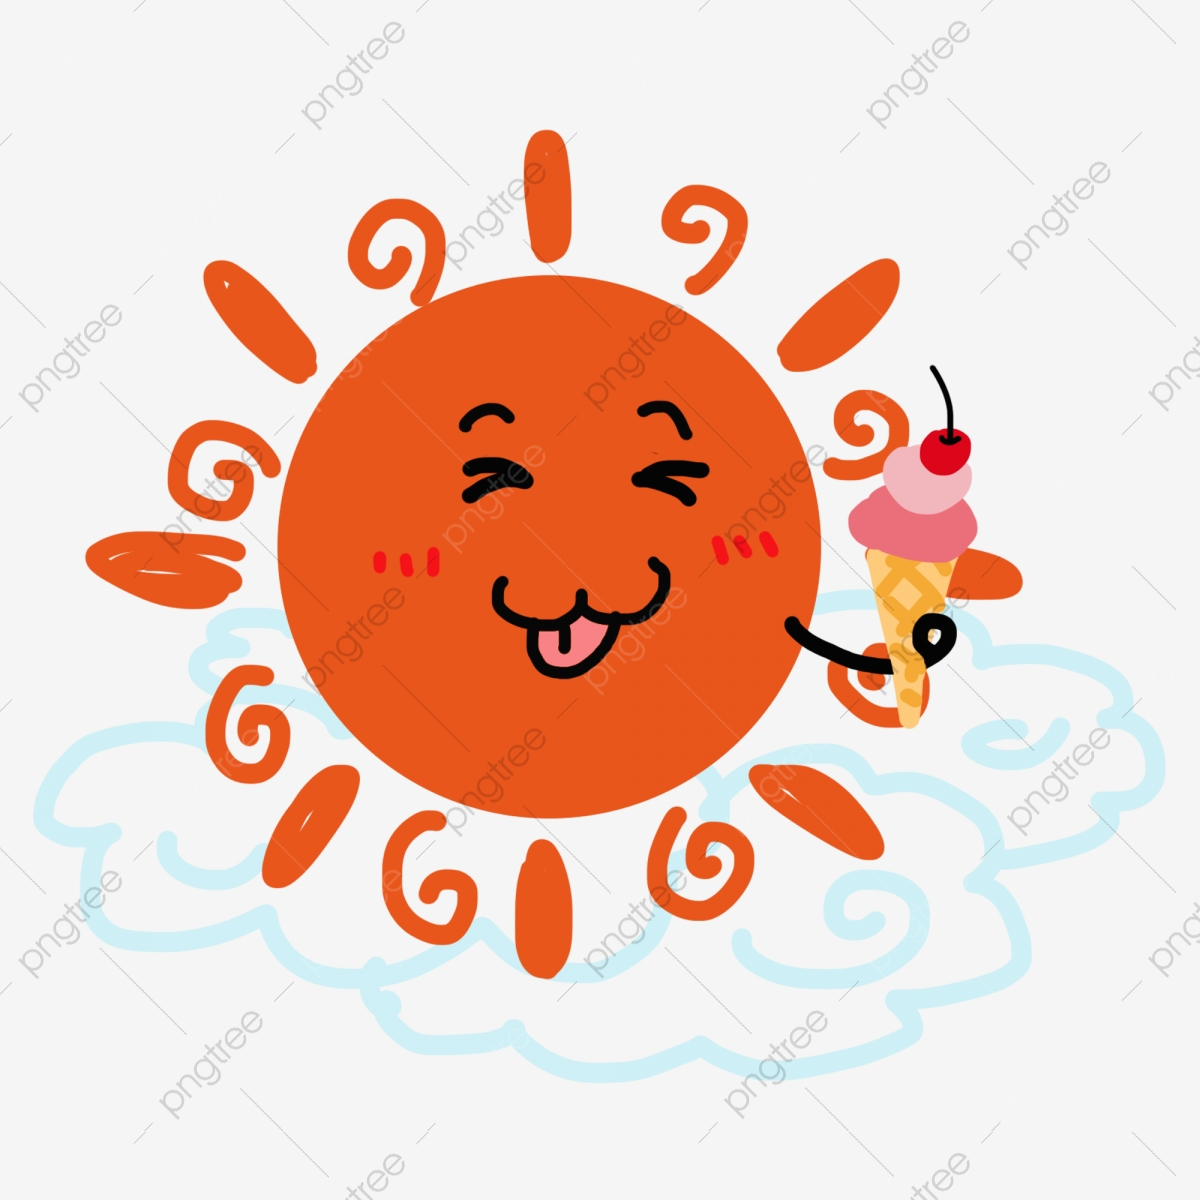 Transparent Cartoon Sun PNG Clipart Picture   Gallery Yopriceville -  High-Quality Images and Transparent PNG Free Clipart